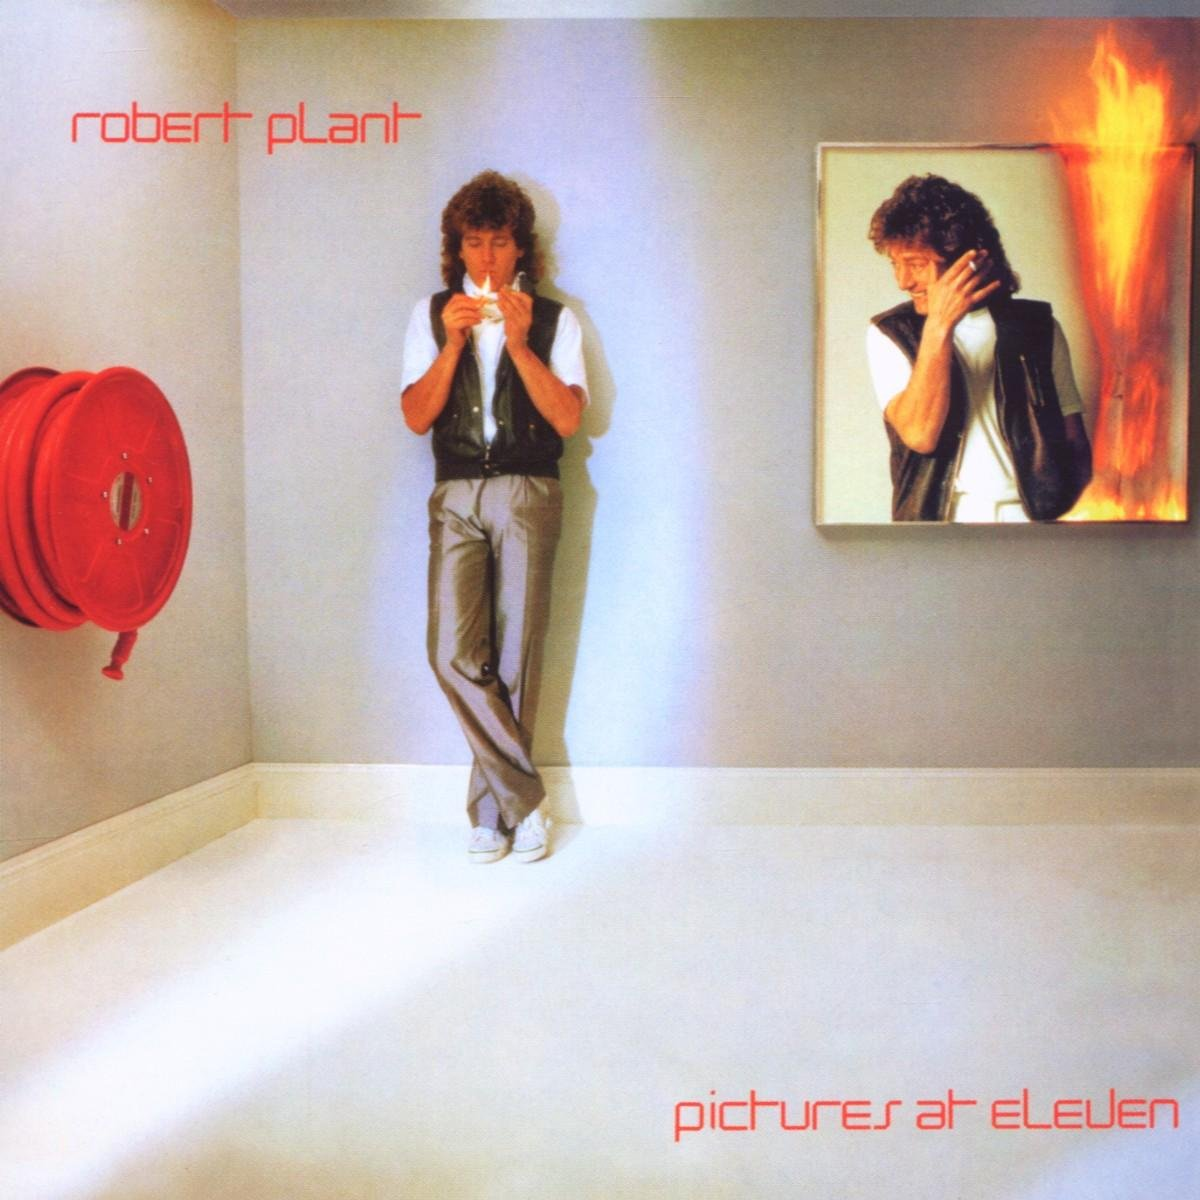 Plant pictures robert eleven at